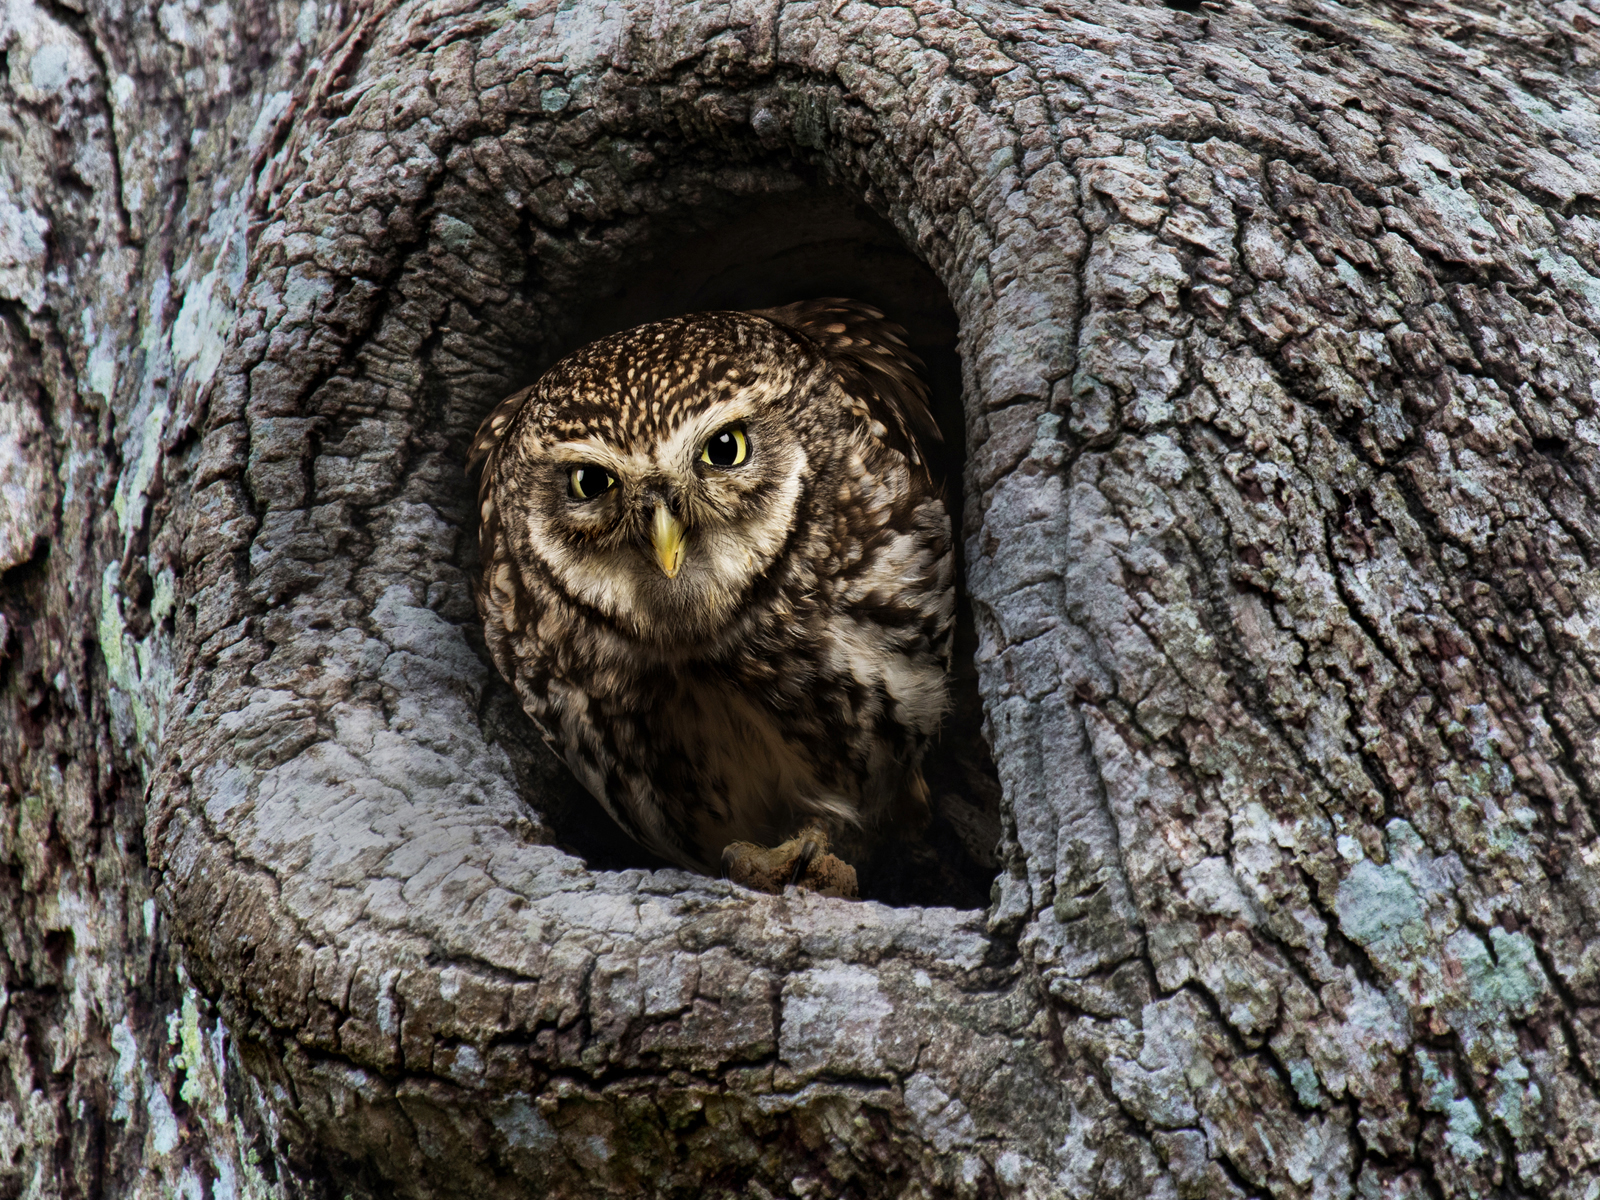 First 'Outraged Owl' by Ian Porter